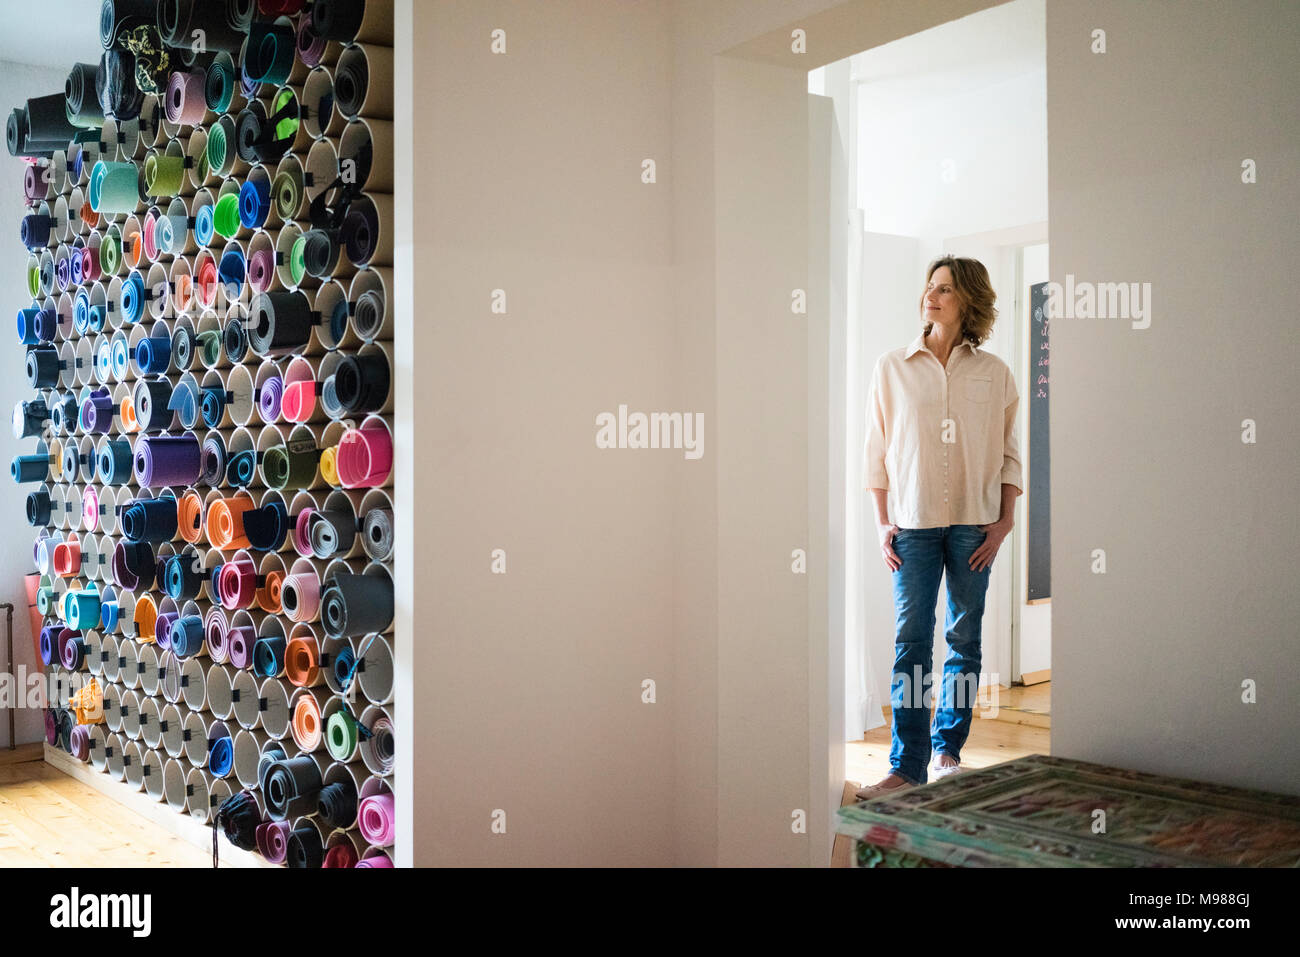 Mature woman standing in a room with assortment of yoga mats Stock Photo